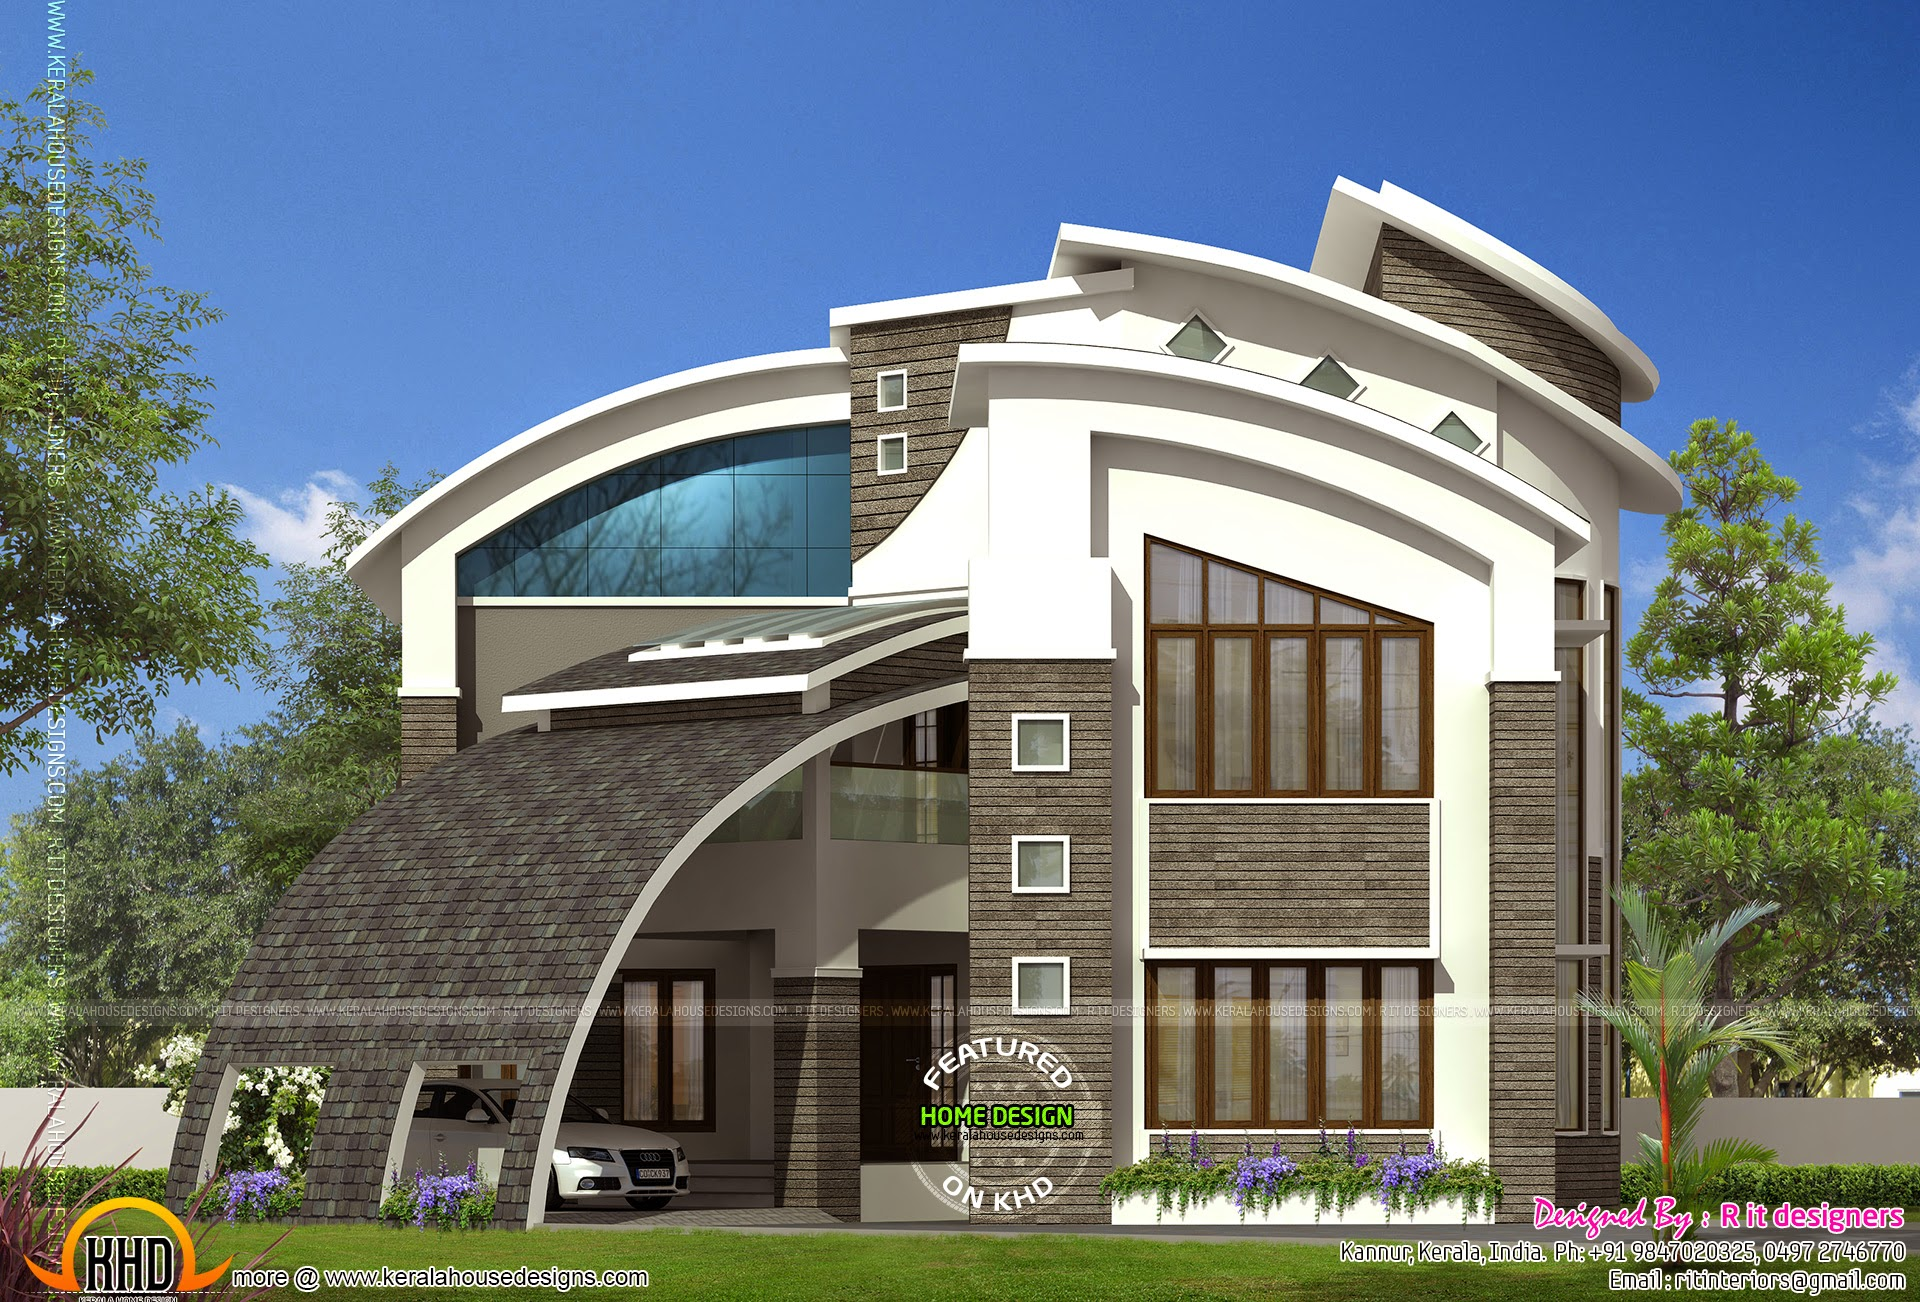 Most modern contemporary house design kerala home design for New house design